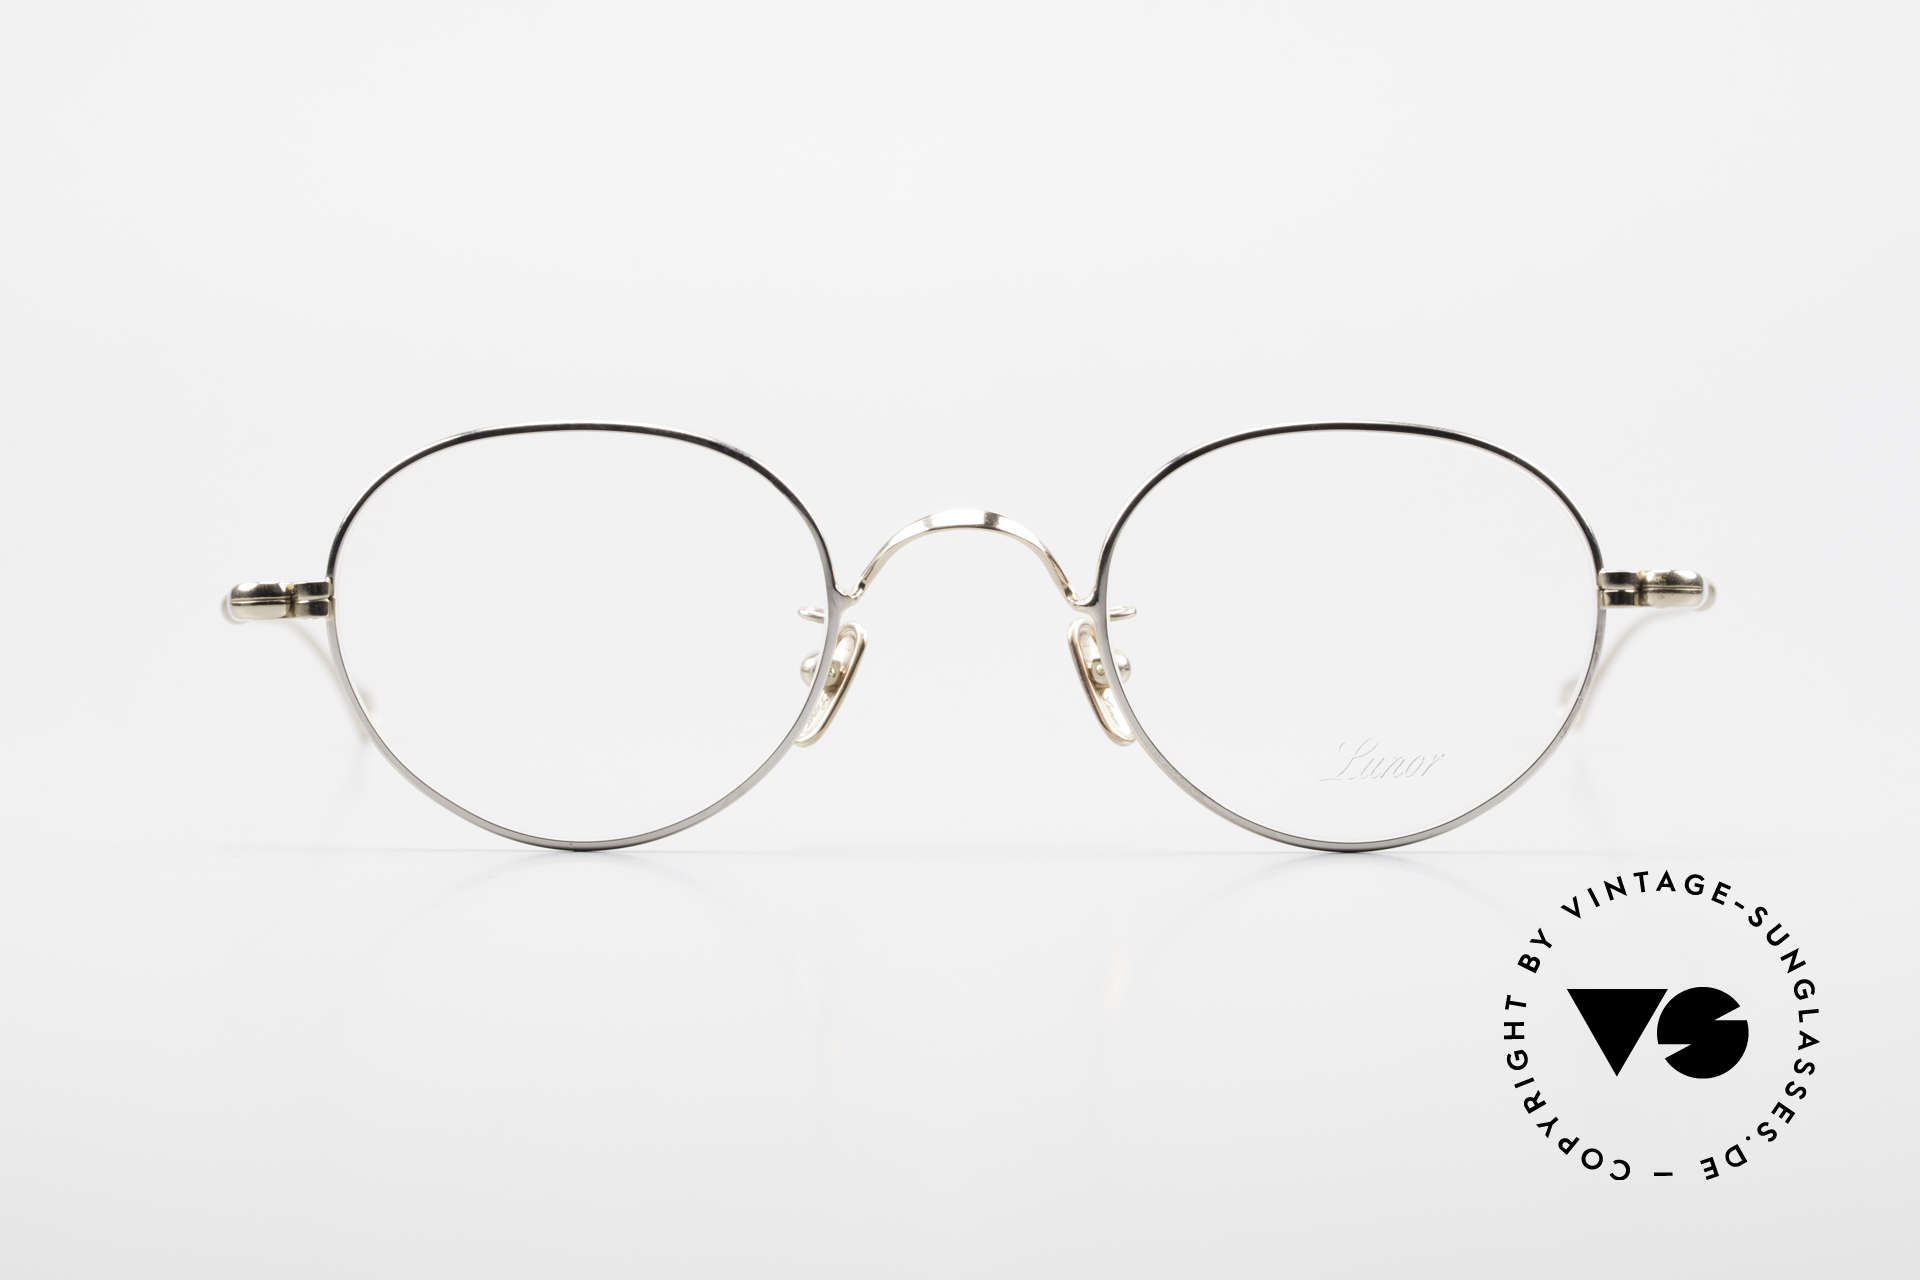 Lunor V 108 Bicolor Eyeglasses Titanium, without ostentatious logos (but in a timeless elegance), Made for Men